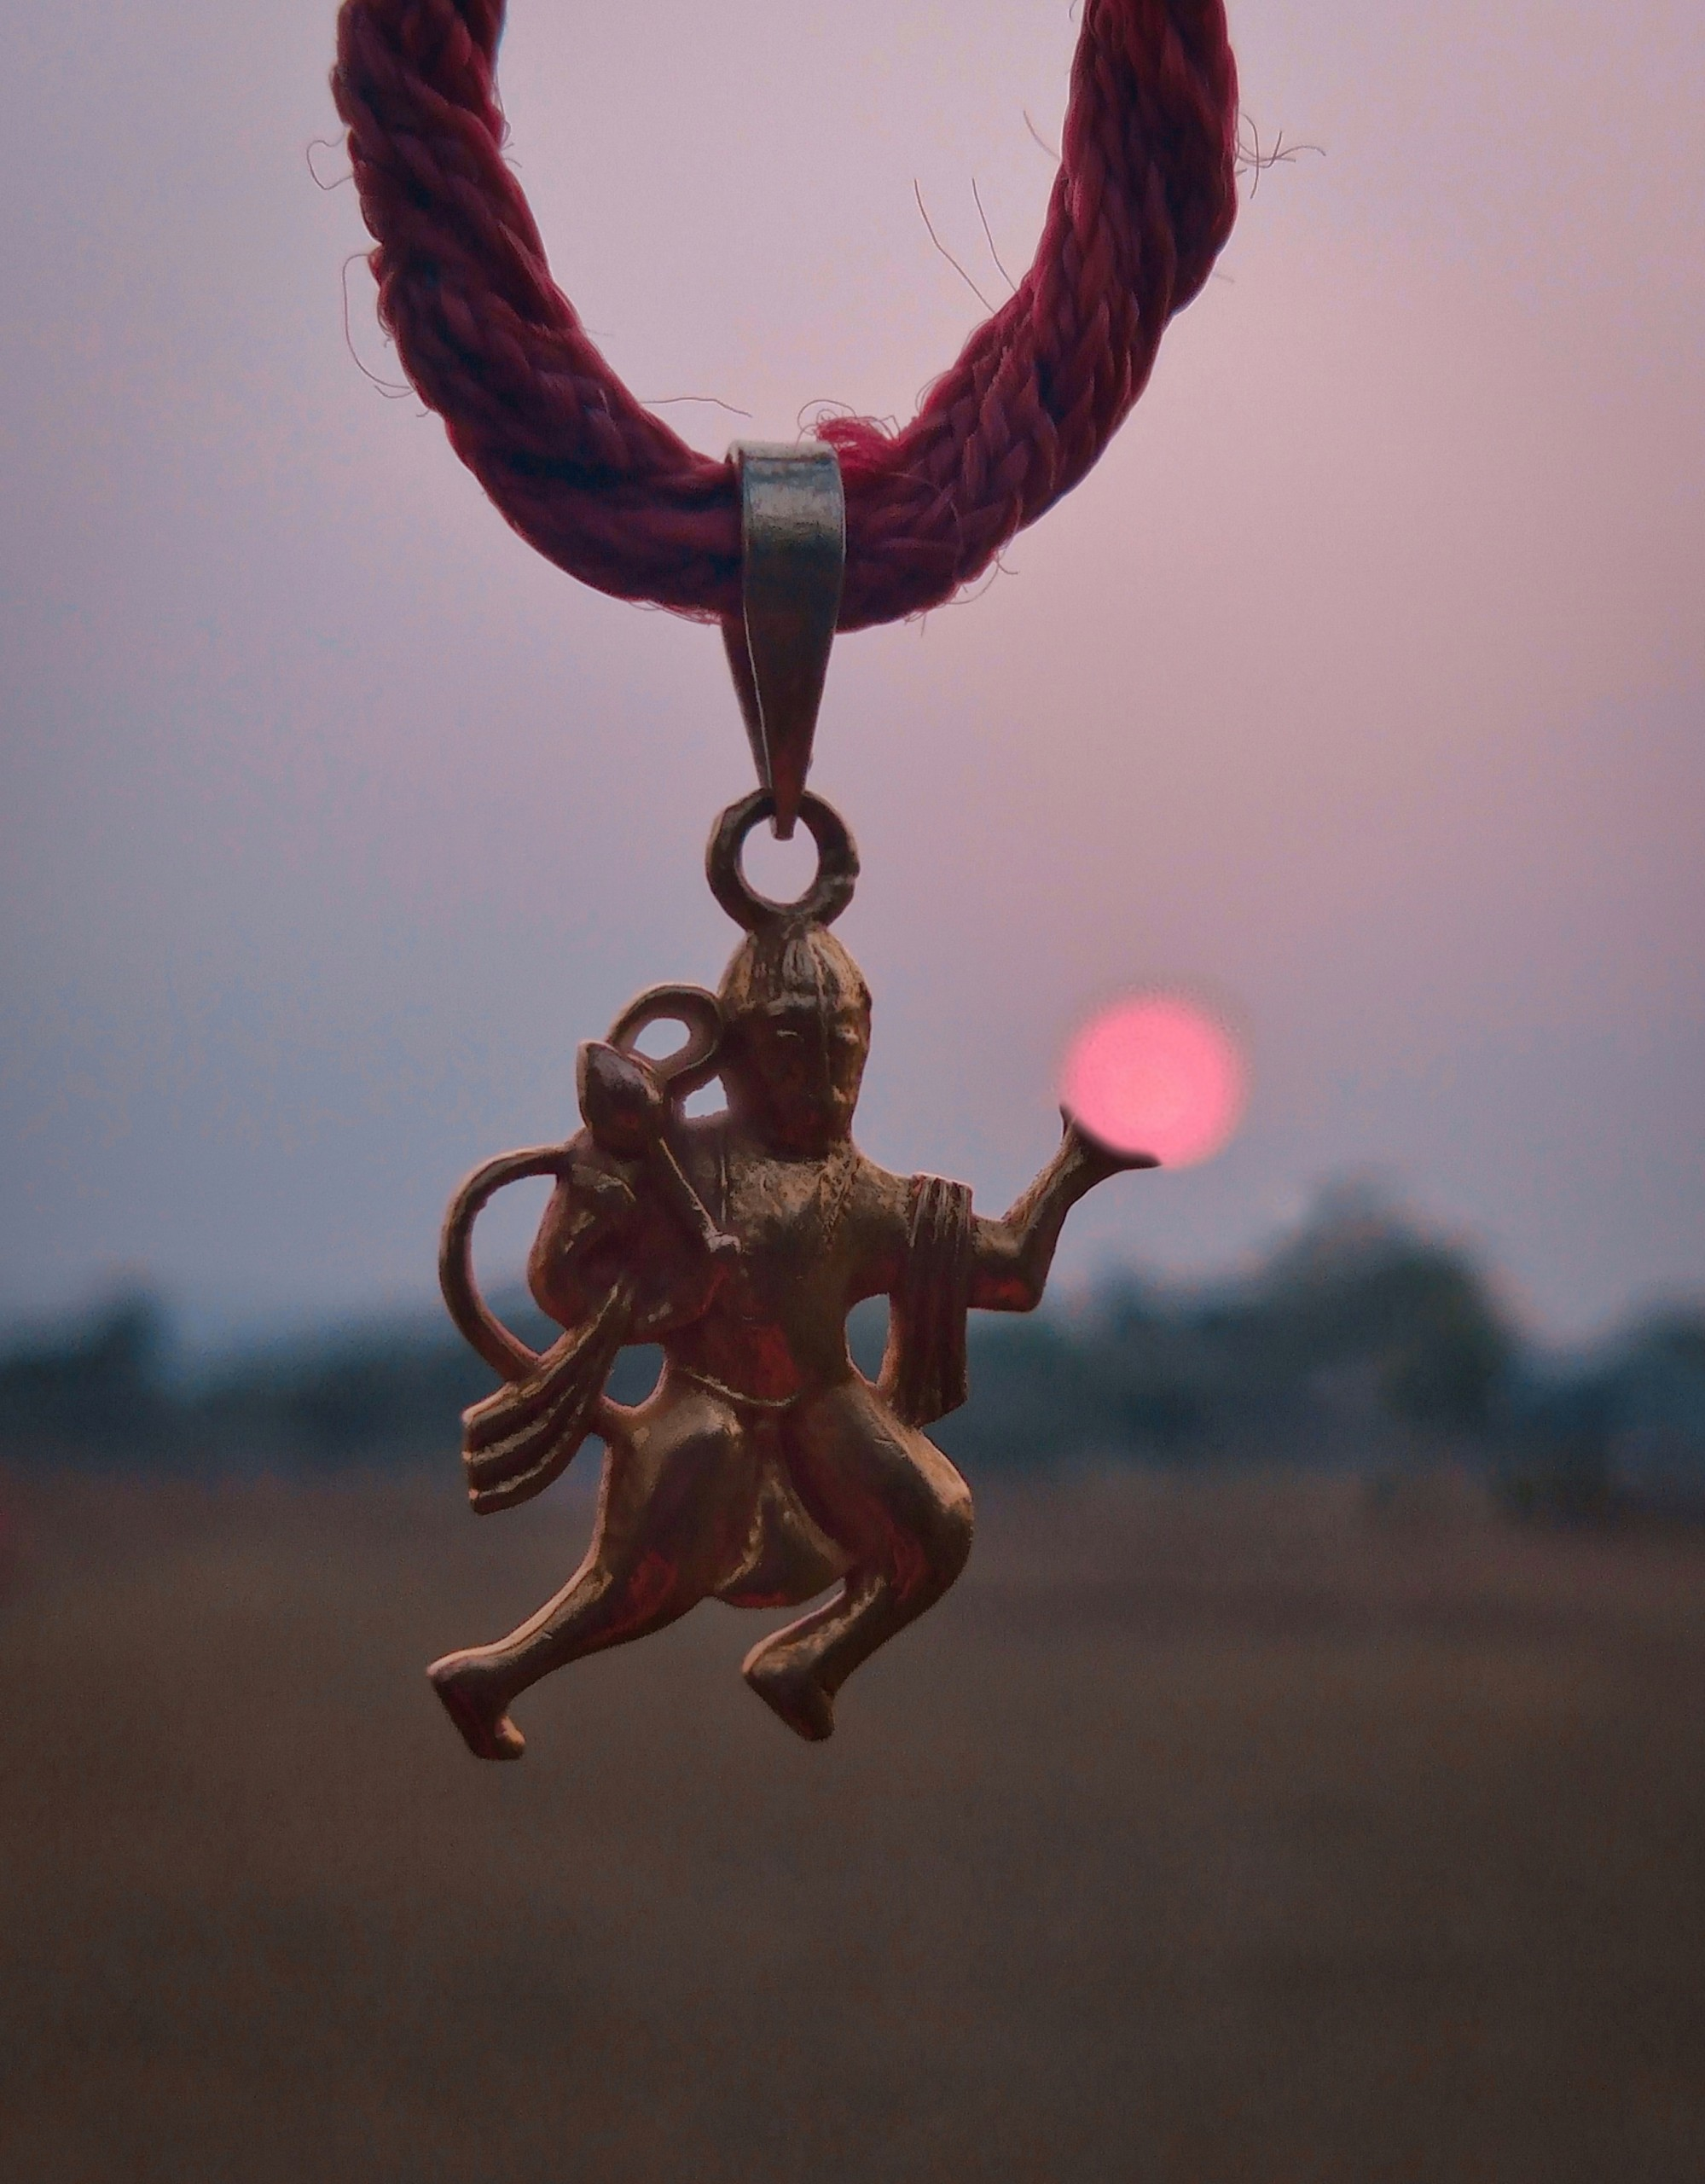 Hanumanji carrying Sun Pendant